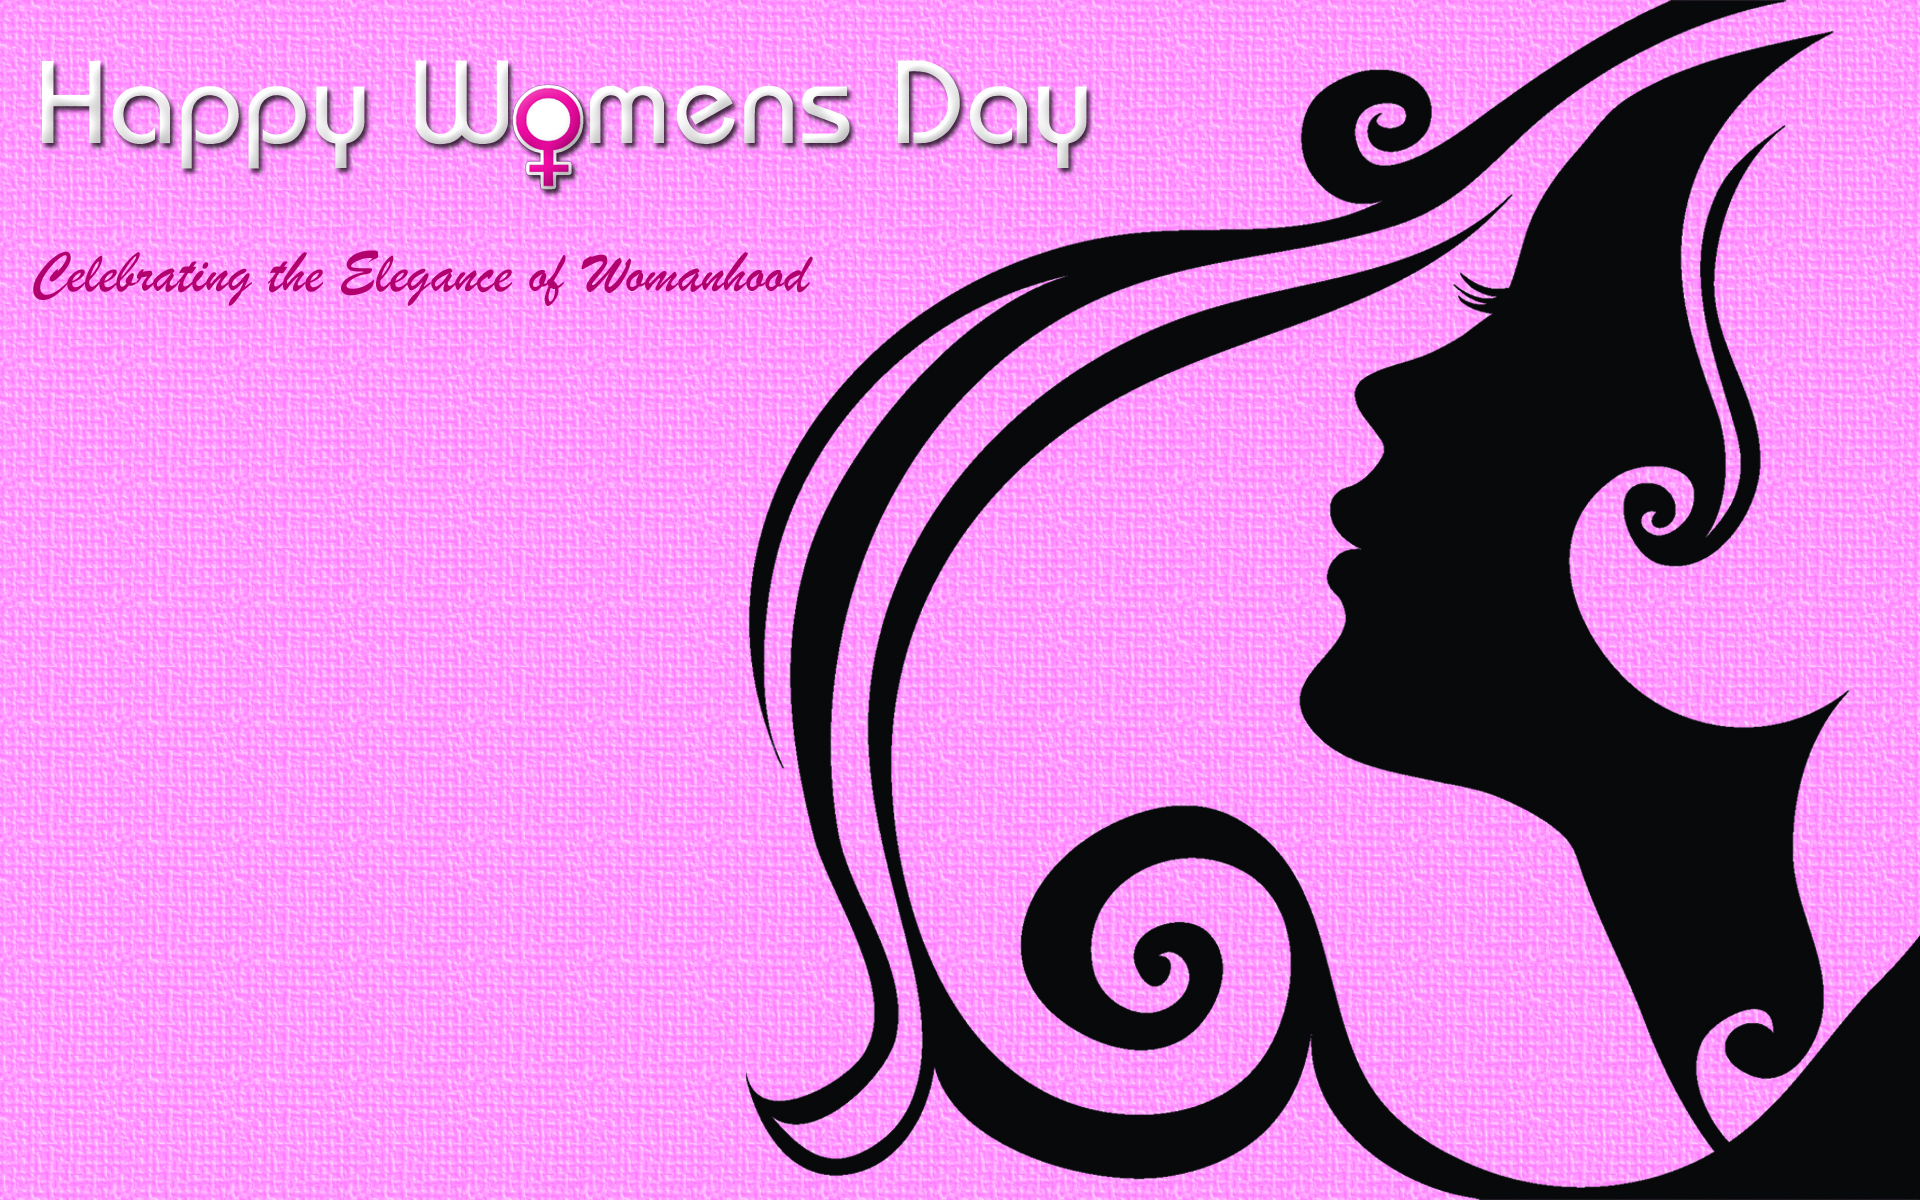 Womens Day Wallpaper HD download 1920x1200